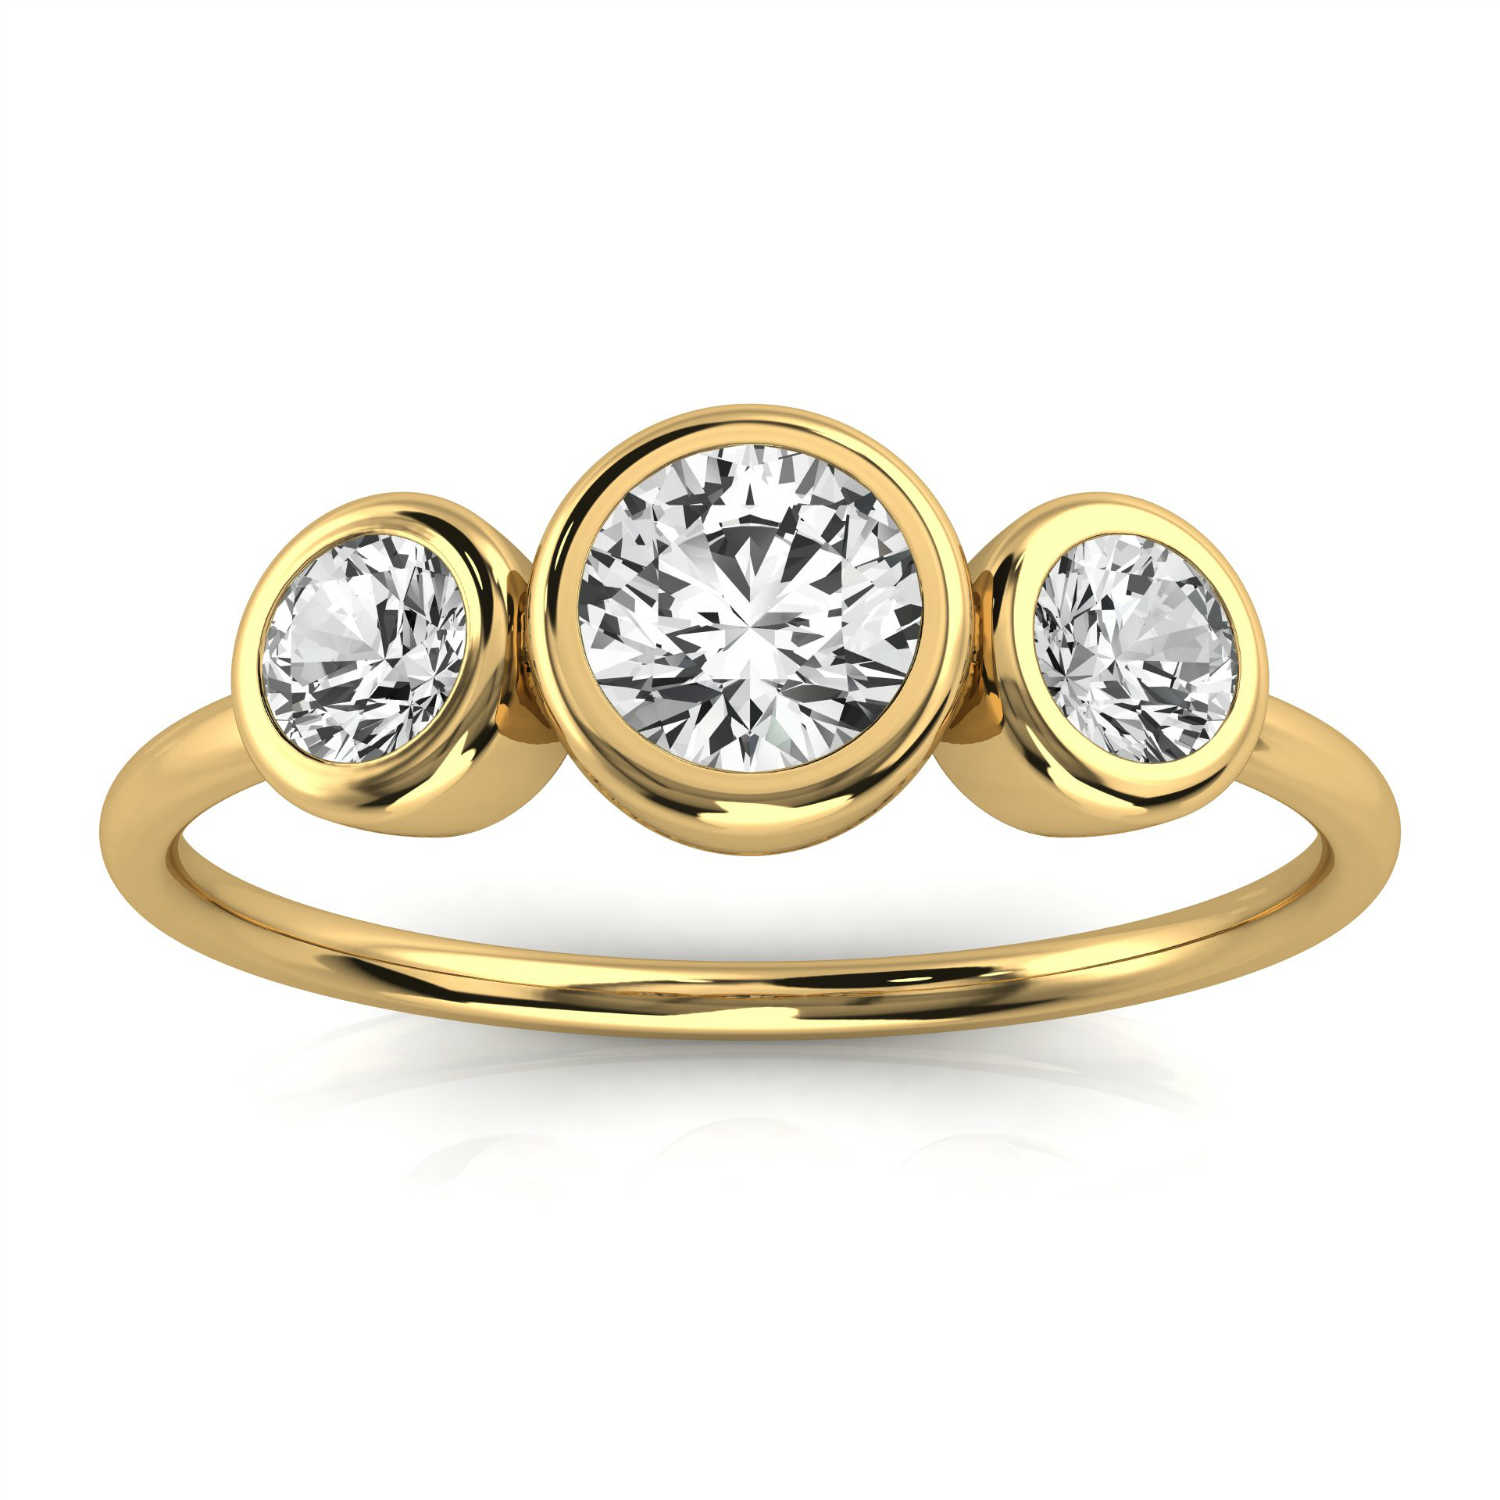 14K Yellow Gold Petite Petra Bezel Trilogy Design Diamond Ring ( 1/3 ct. tw)